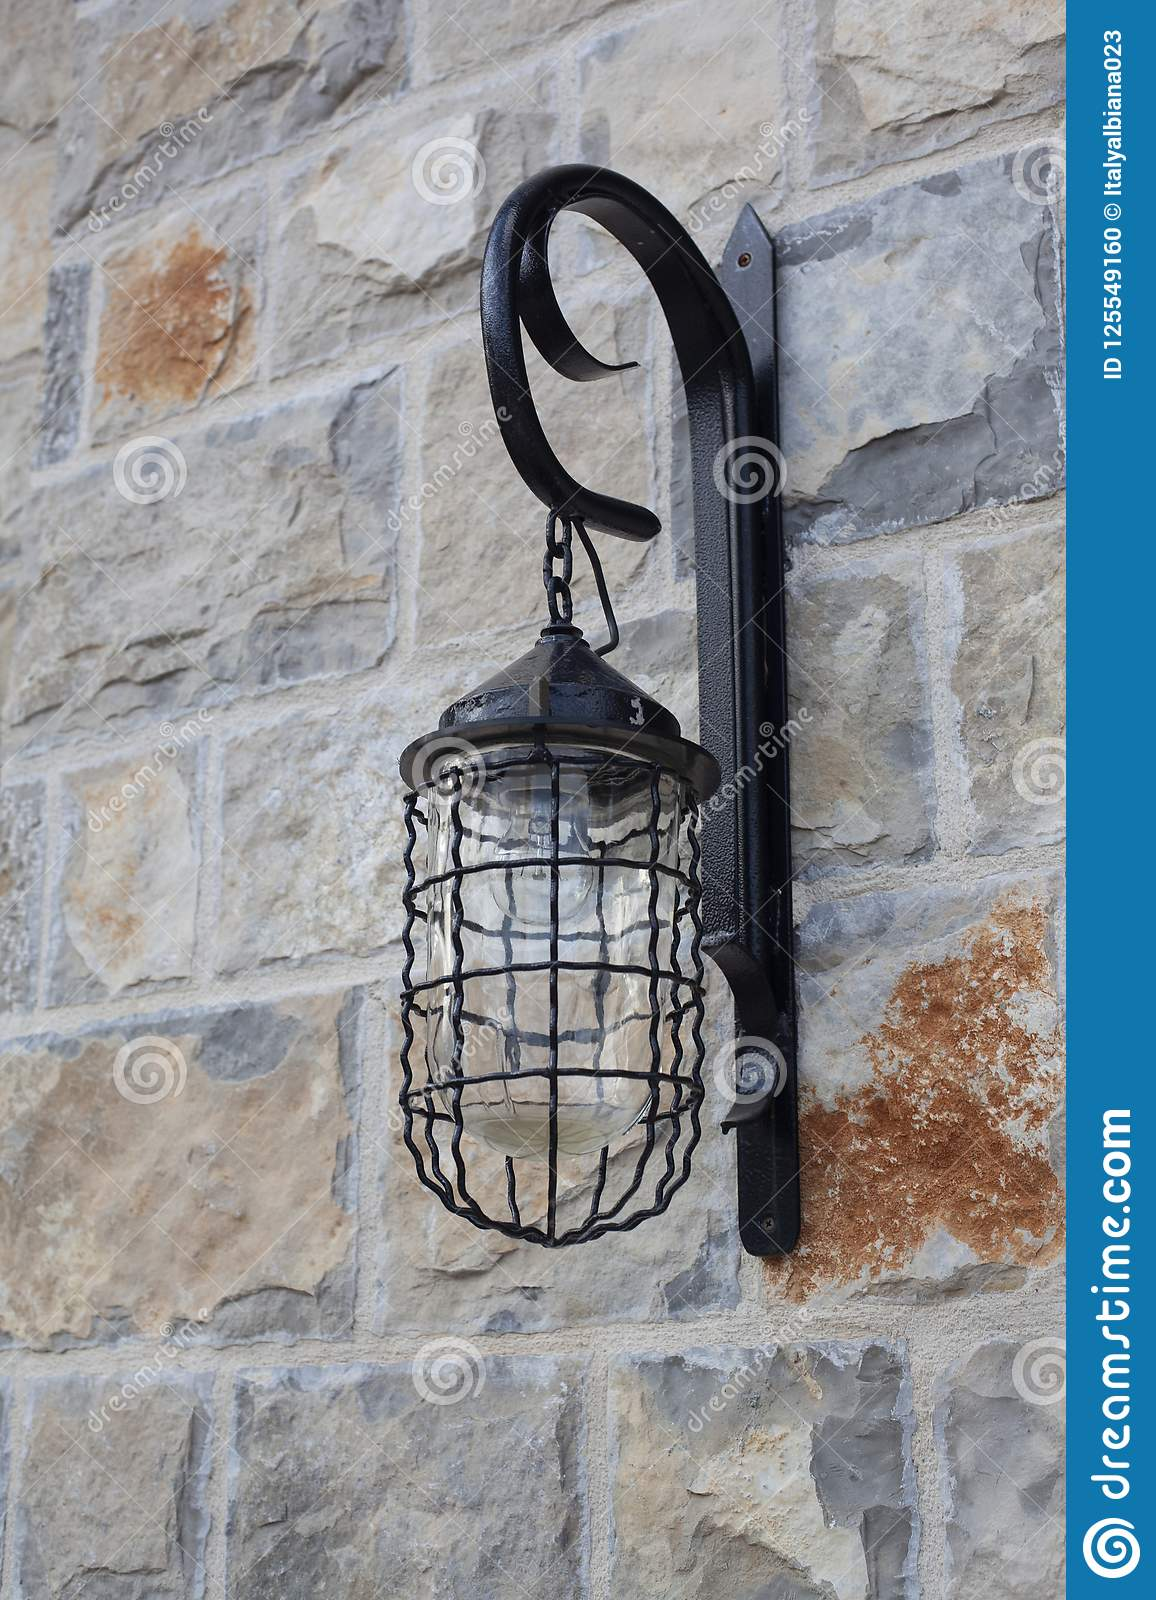 Alte Wandlampen Old Wall Lamp At Stone Wall Stock Photo - Image Of Lamp, Residence: 125549160